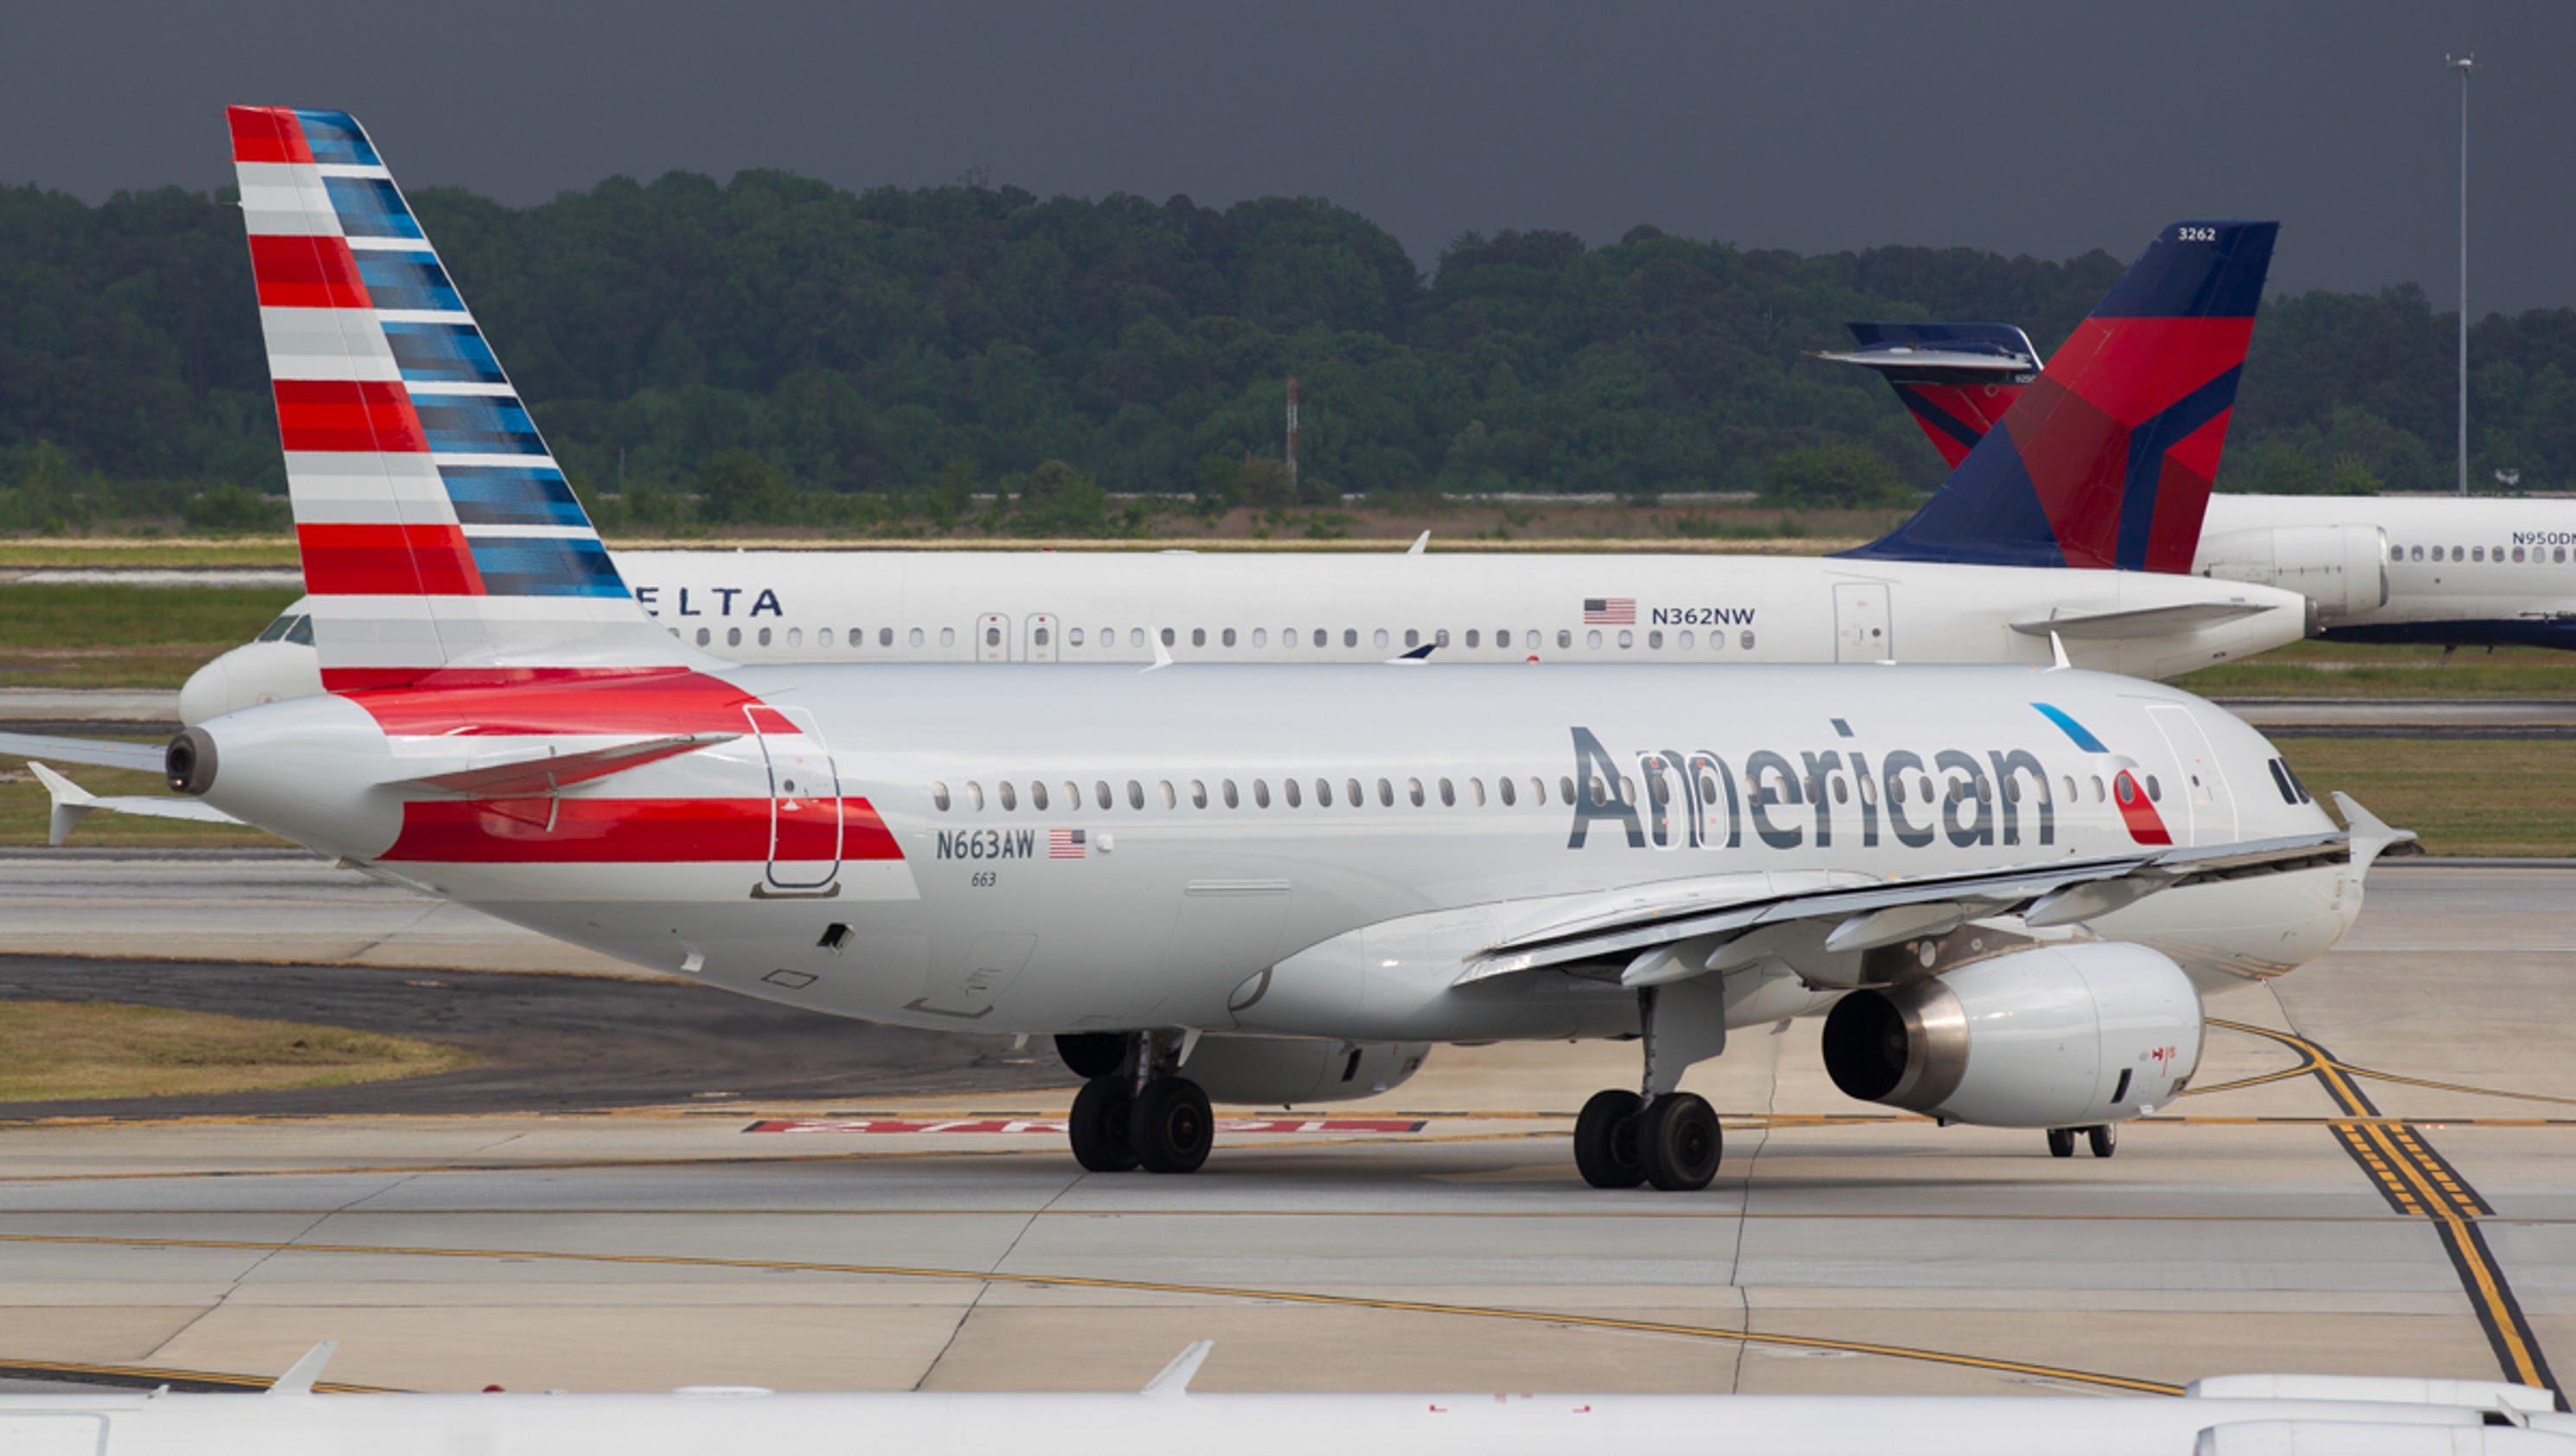 Budget-conscious travelers, look no further. Book your flight with American Airlines and save big on your trip. Whether you're flying for business or pleasure, American will easily get you to your destination for less. American offers hundreds of flights at discount prices to .